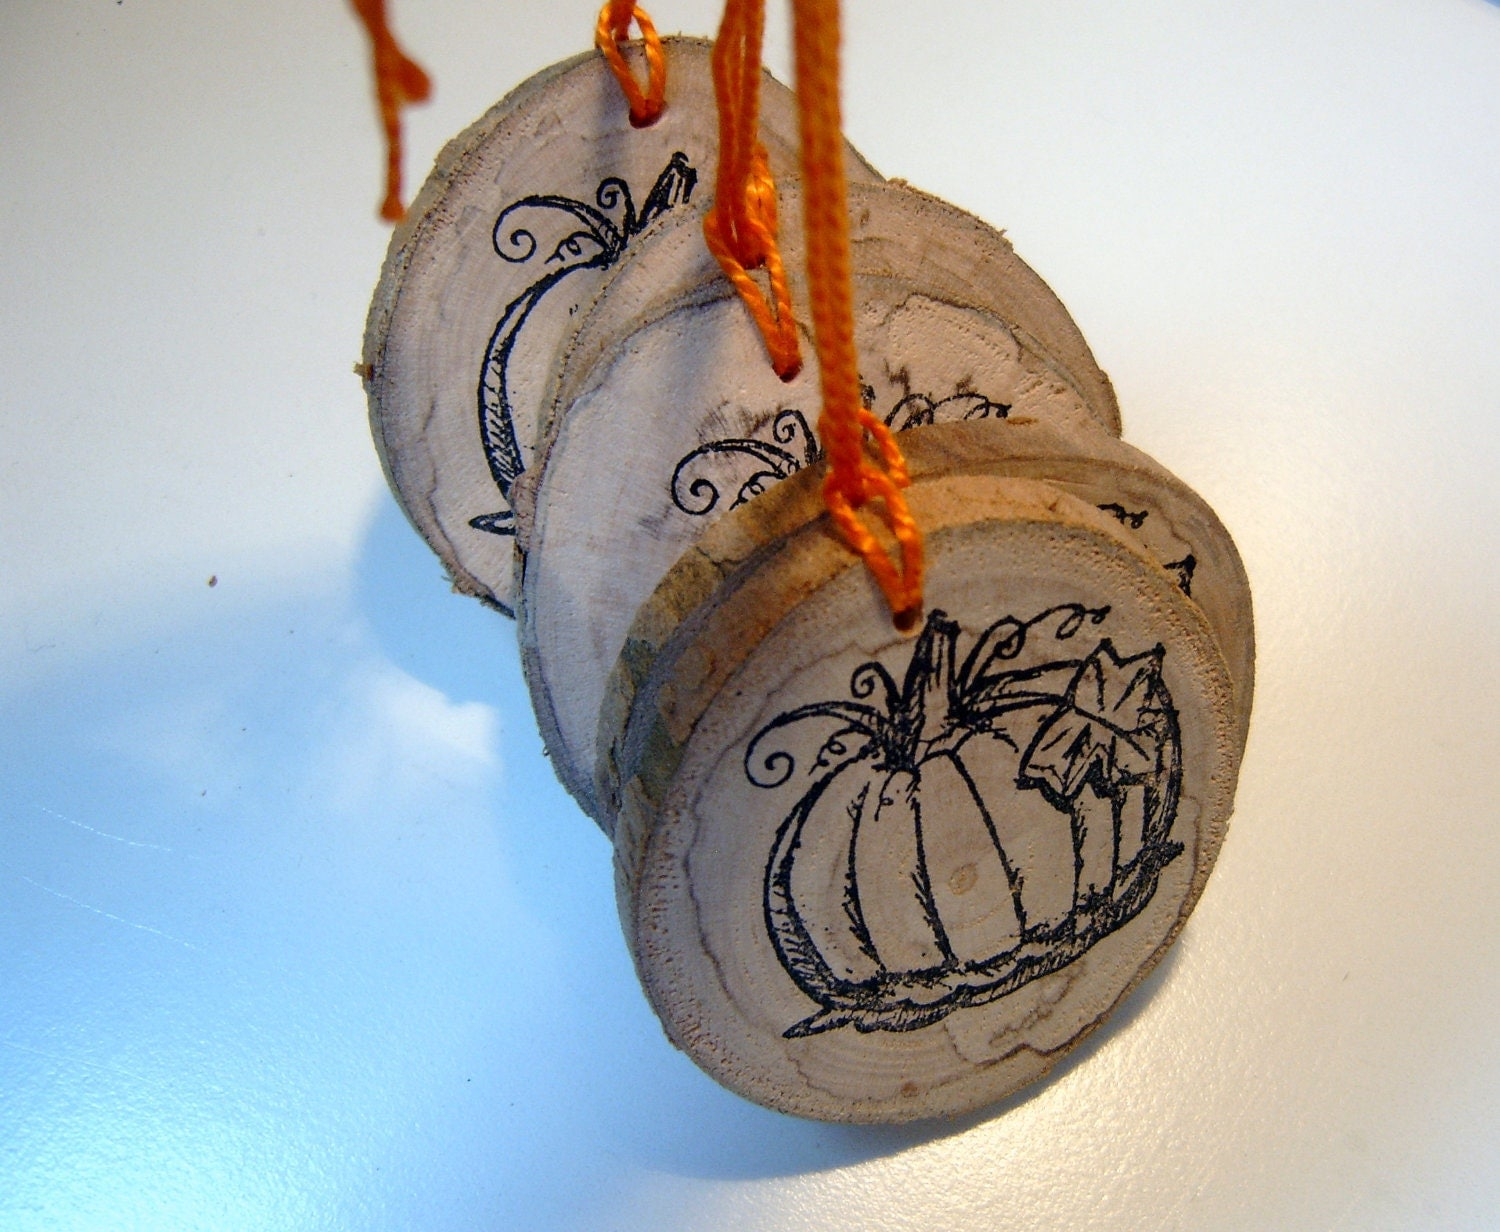 Wedding Gift Ornaments: 5 Round Wooden Pumpkin Wedding Favor HangTag Ornaments Party